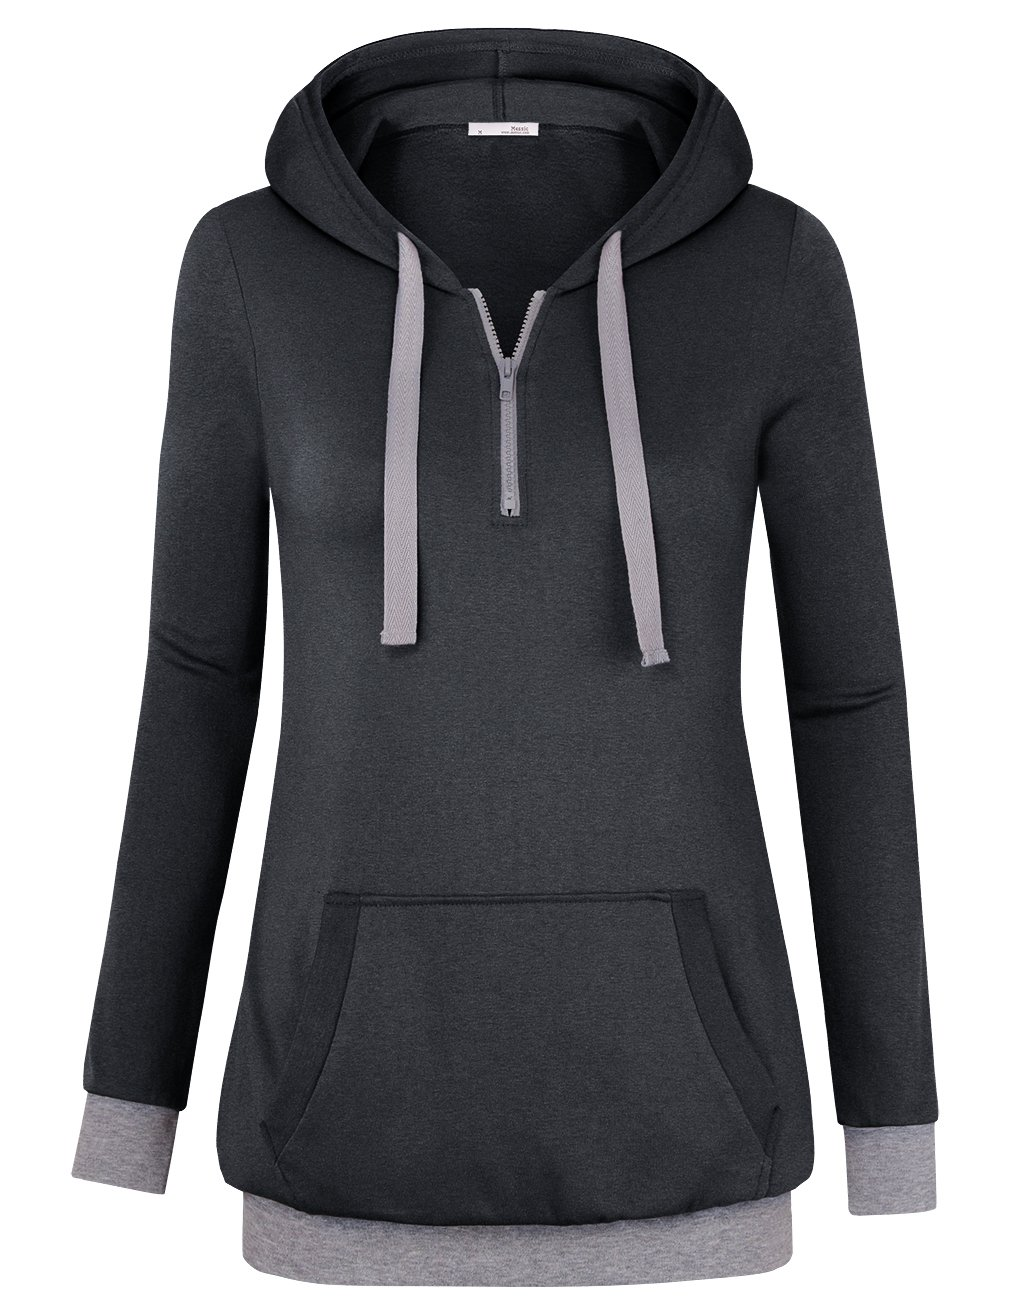 Messic Womens Zipper Hoodie, Ladies Basic Patchwork Long Sleeve Lightweight Thin Pullover String Sweater(Carbon Black,Small)